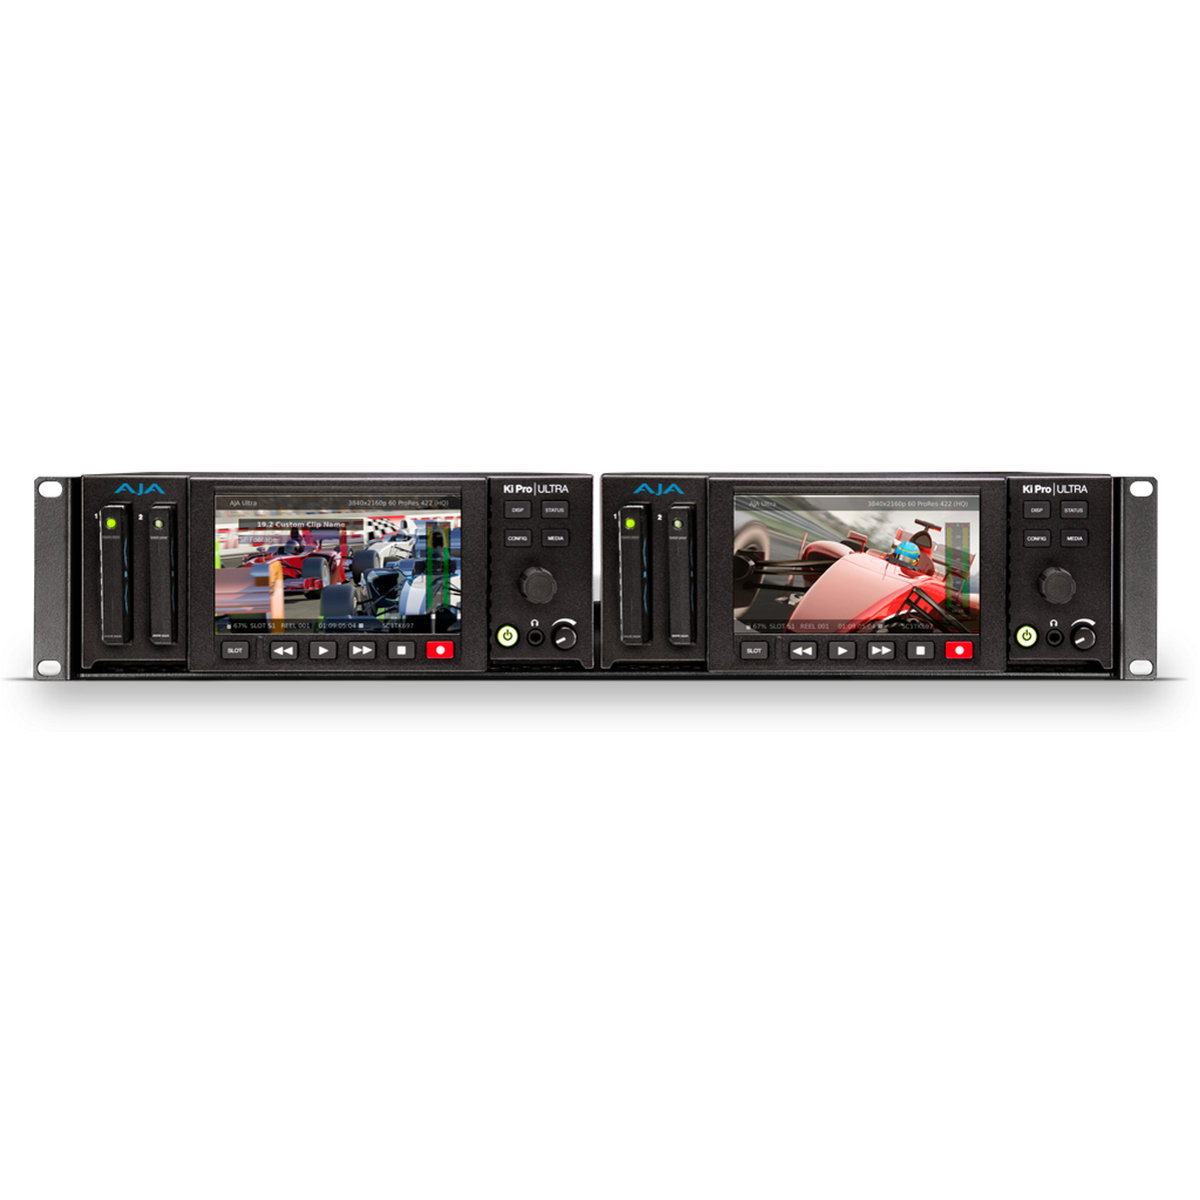 4K 60p Support AJA Ki Pro Ultra 4K Video Recorder and Player with ...